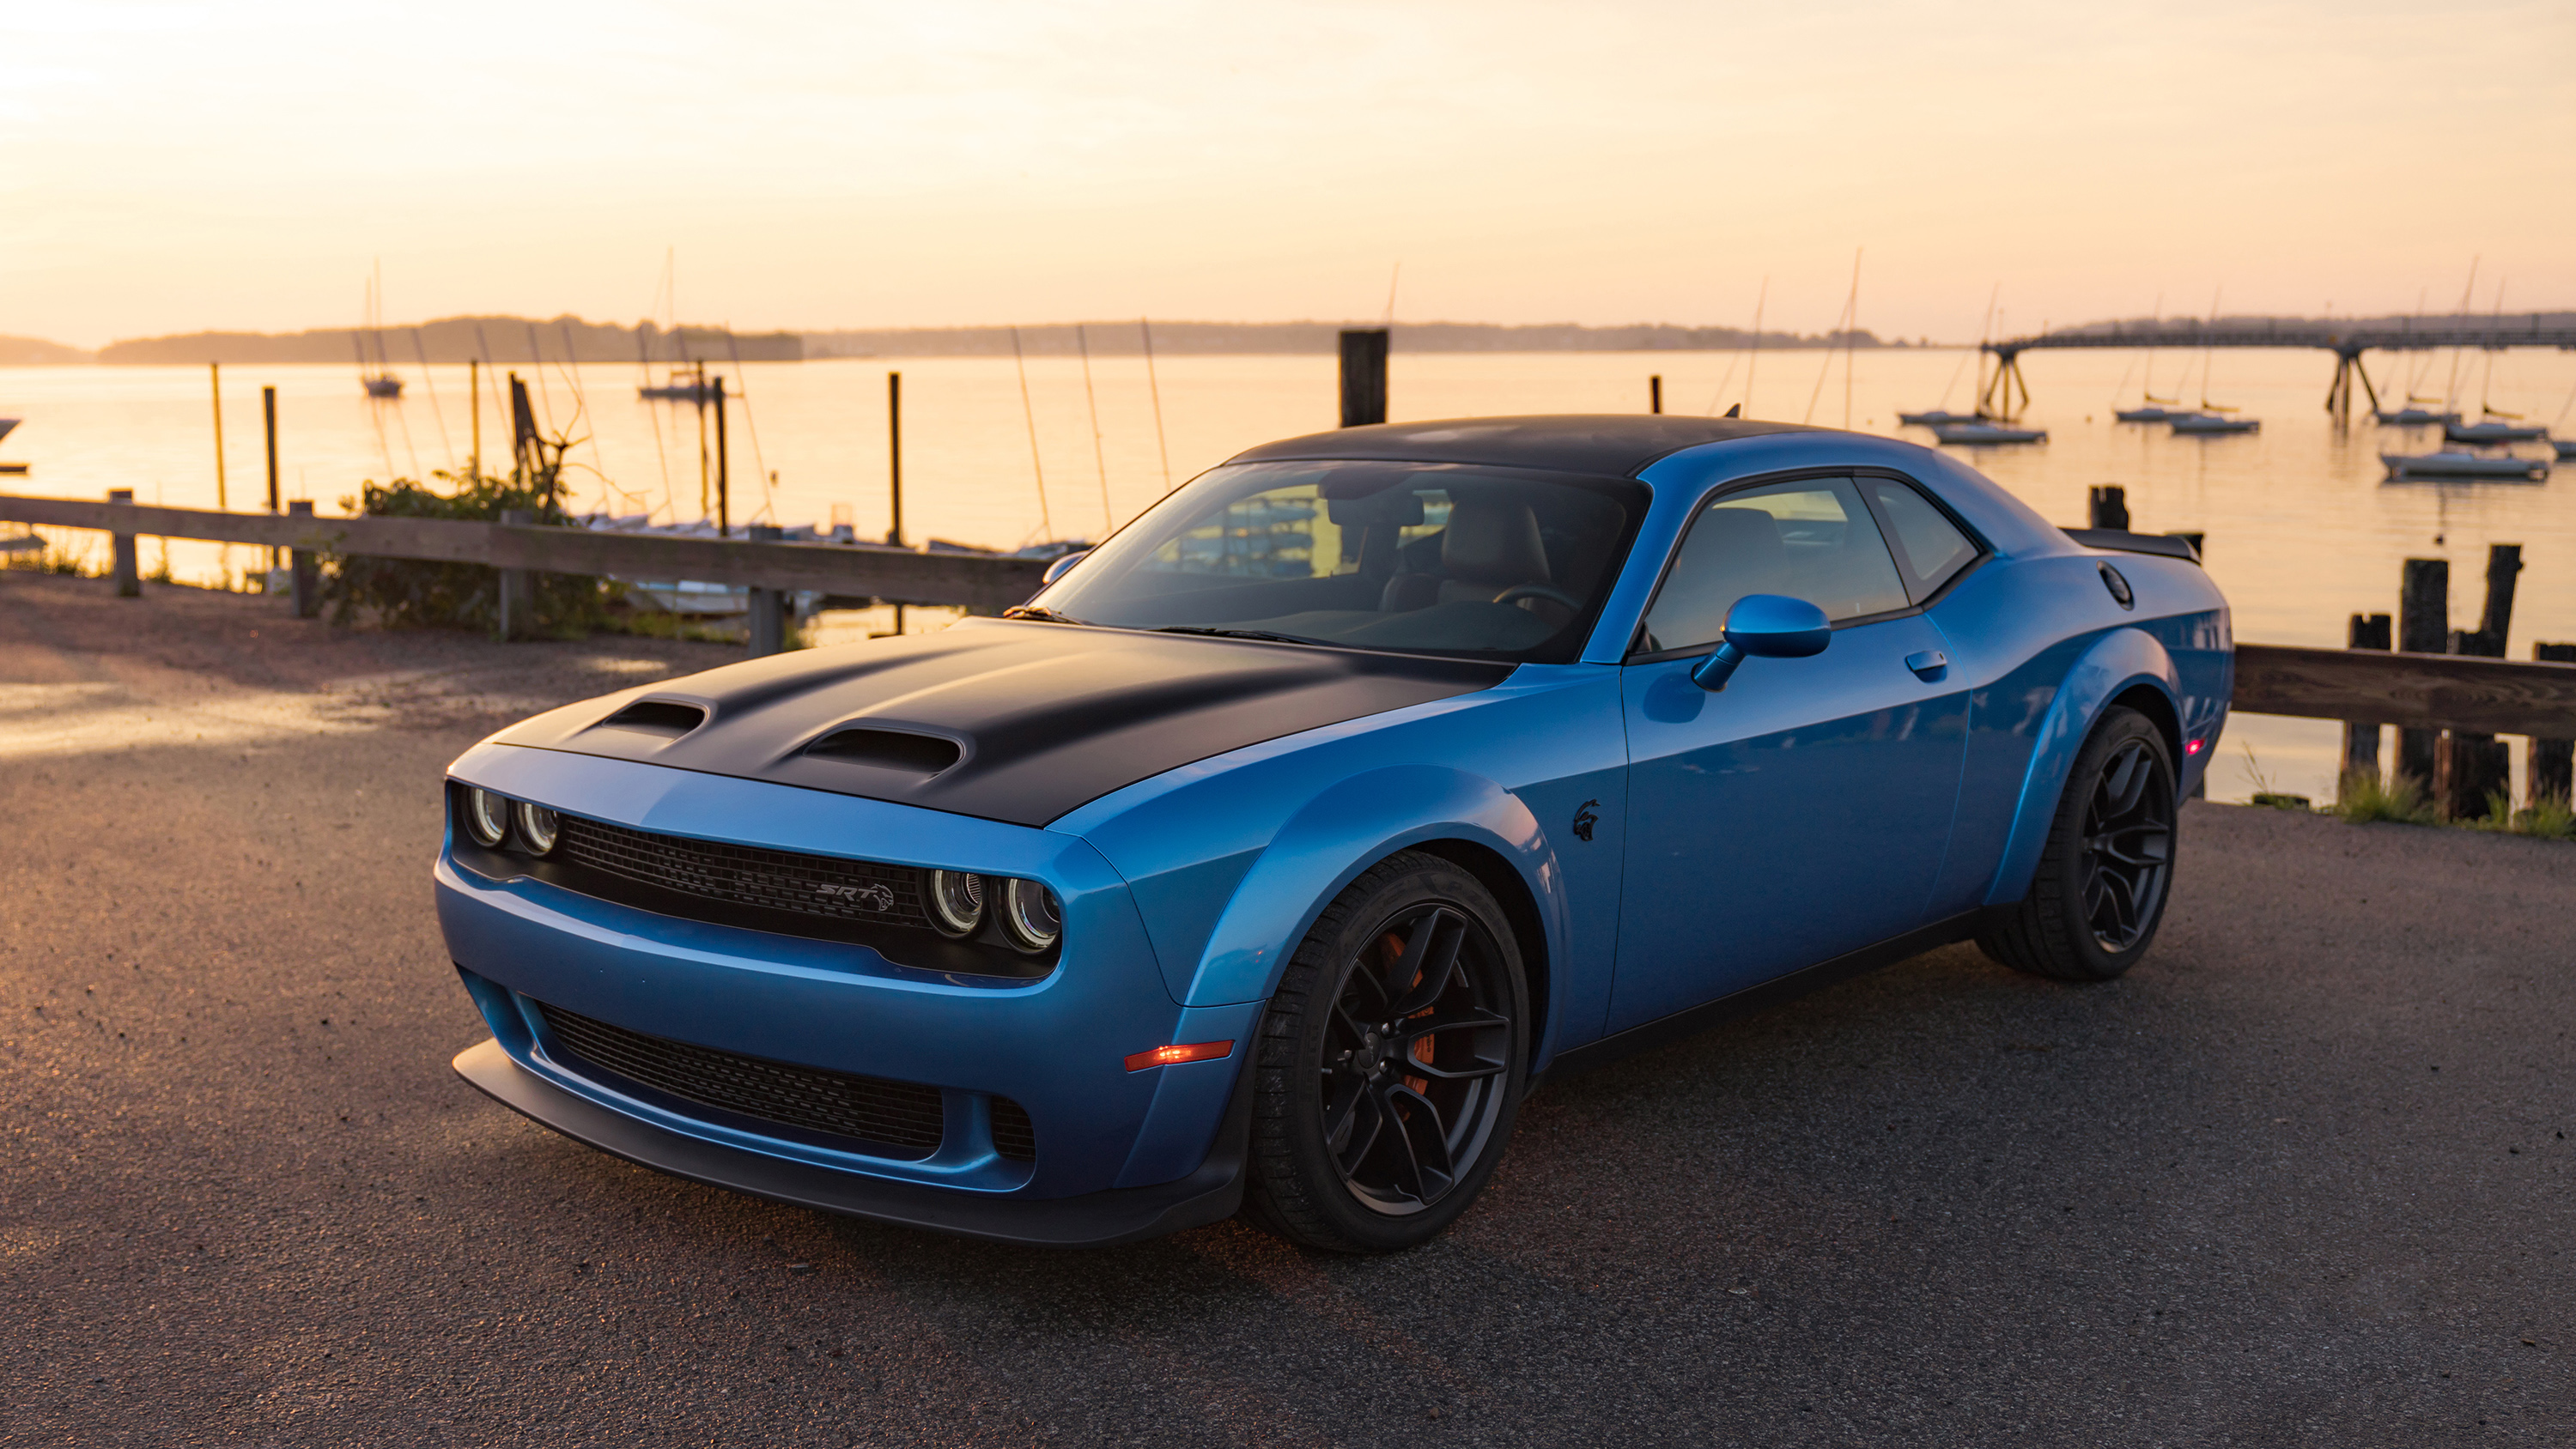 2019 Dodge Challenger Srt Hellcat Wallpapers Wallpaper Cave